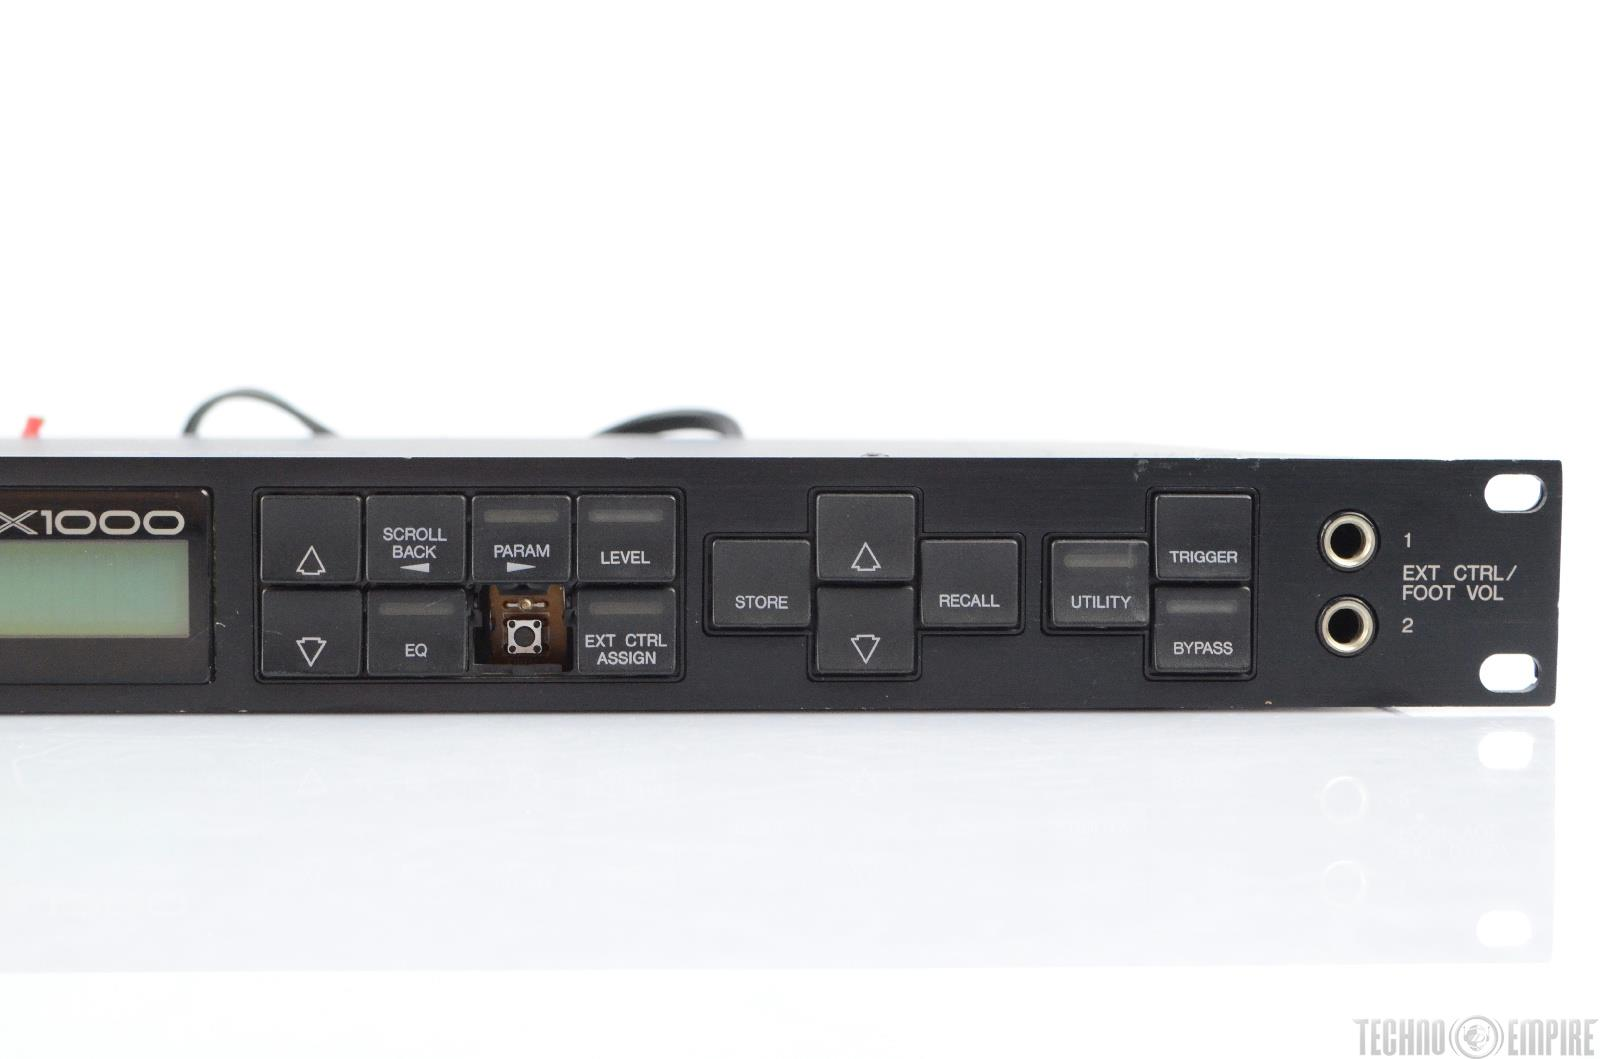 yamaha spx1000 digital multi effects processor 22959 ebay. Black Bedroom Furniture Sets. Home Design Ideas